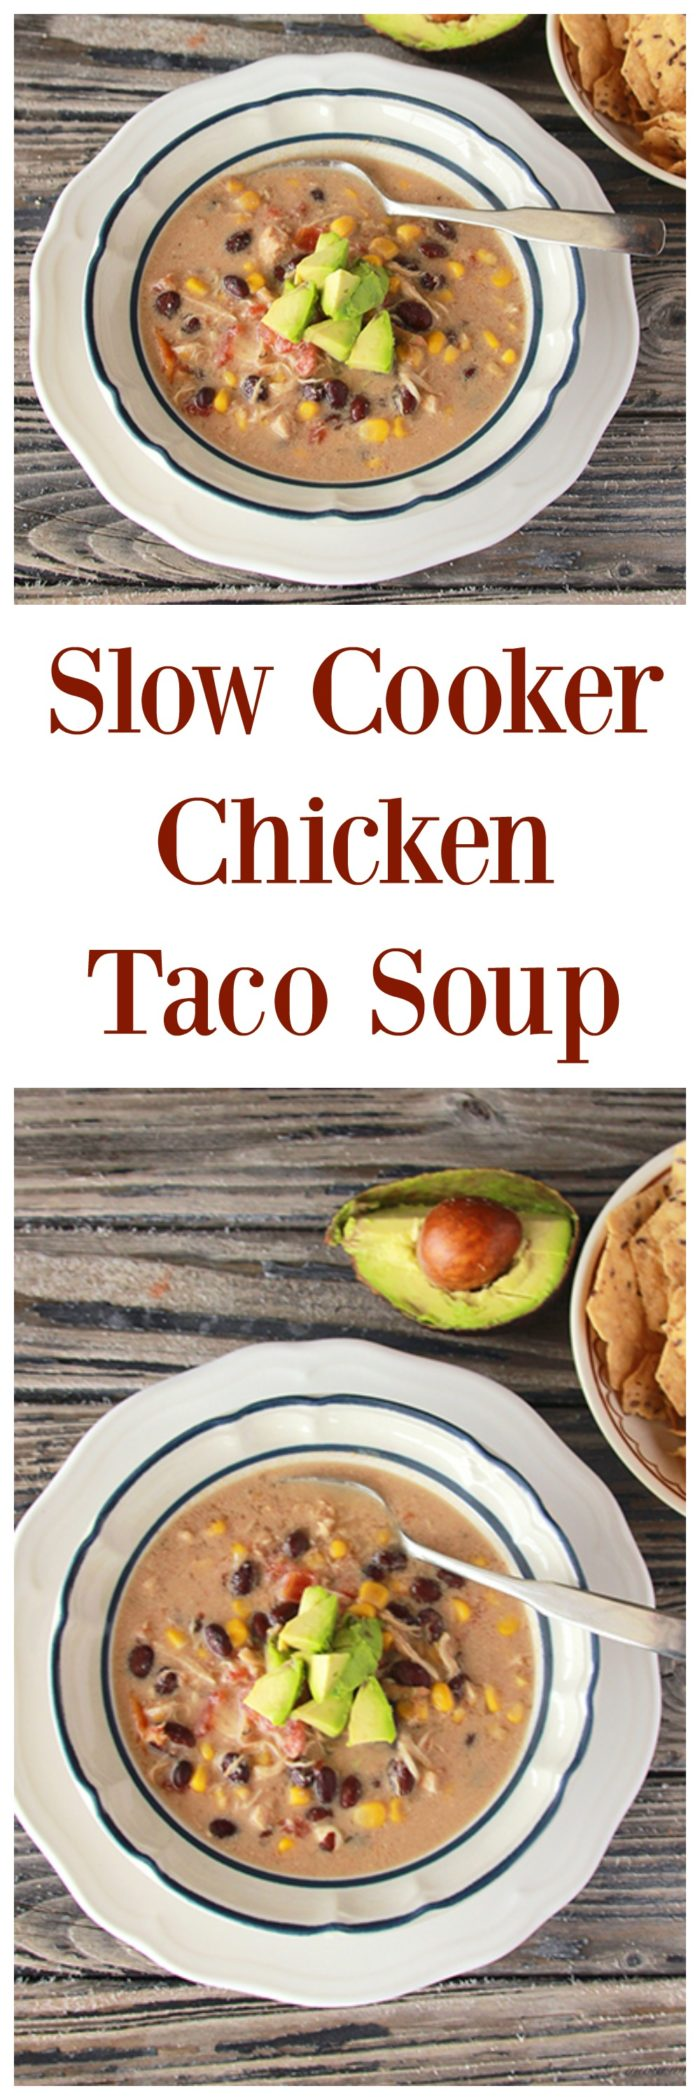 Slow Cooker Chicken Taco Soup on www.cookingwithruthie.com is a quick and easy weeknight dinner!